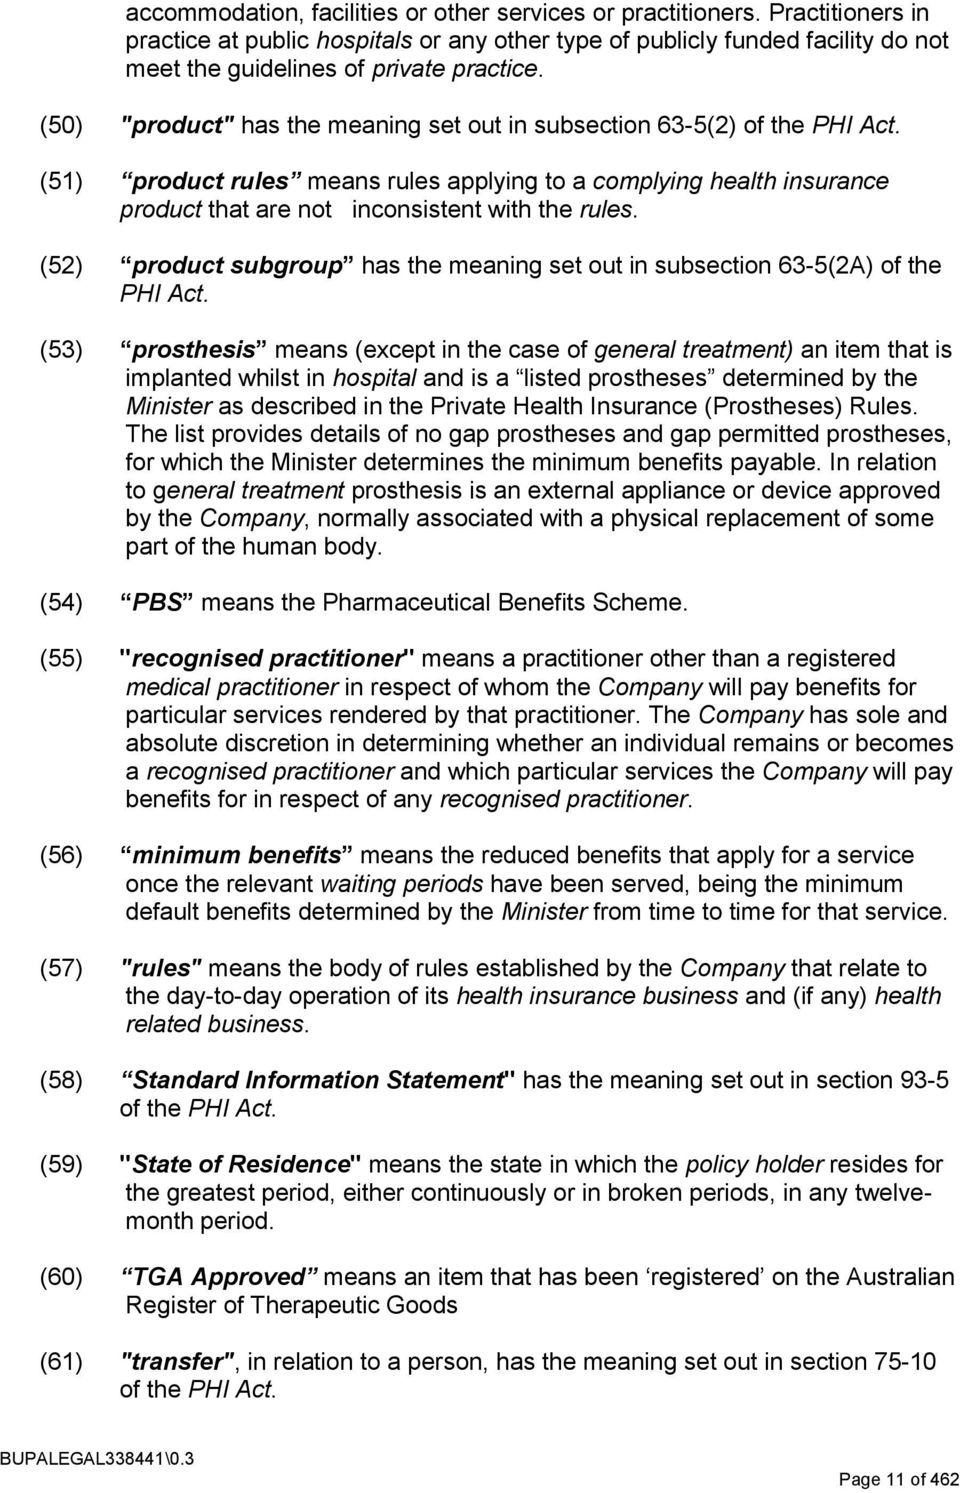 "(50) ""product"" has the meaning set out in subsection 63-5(2) of the PHI Act. (51) product rules means rules applying to a complying health insurance product that are not inconsistent with the rules."